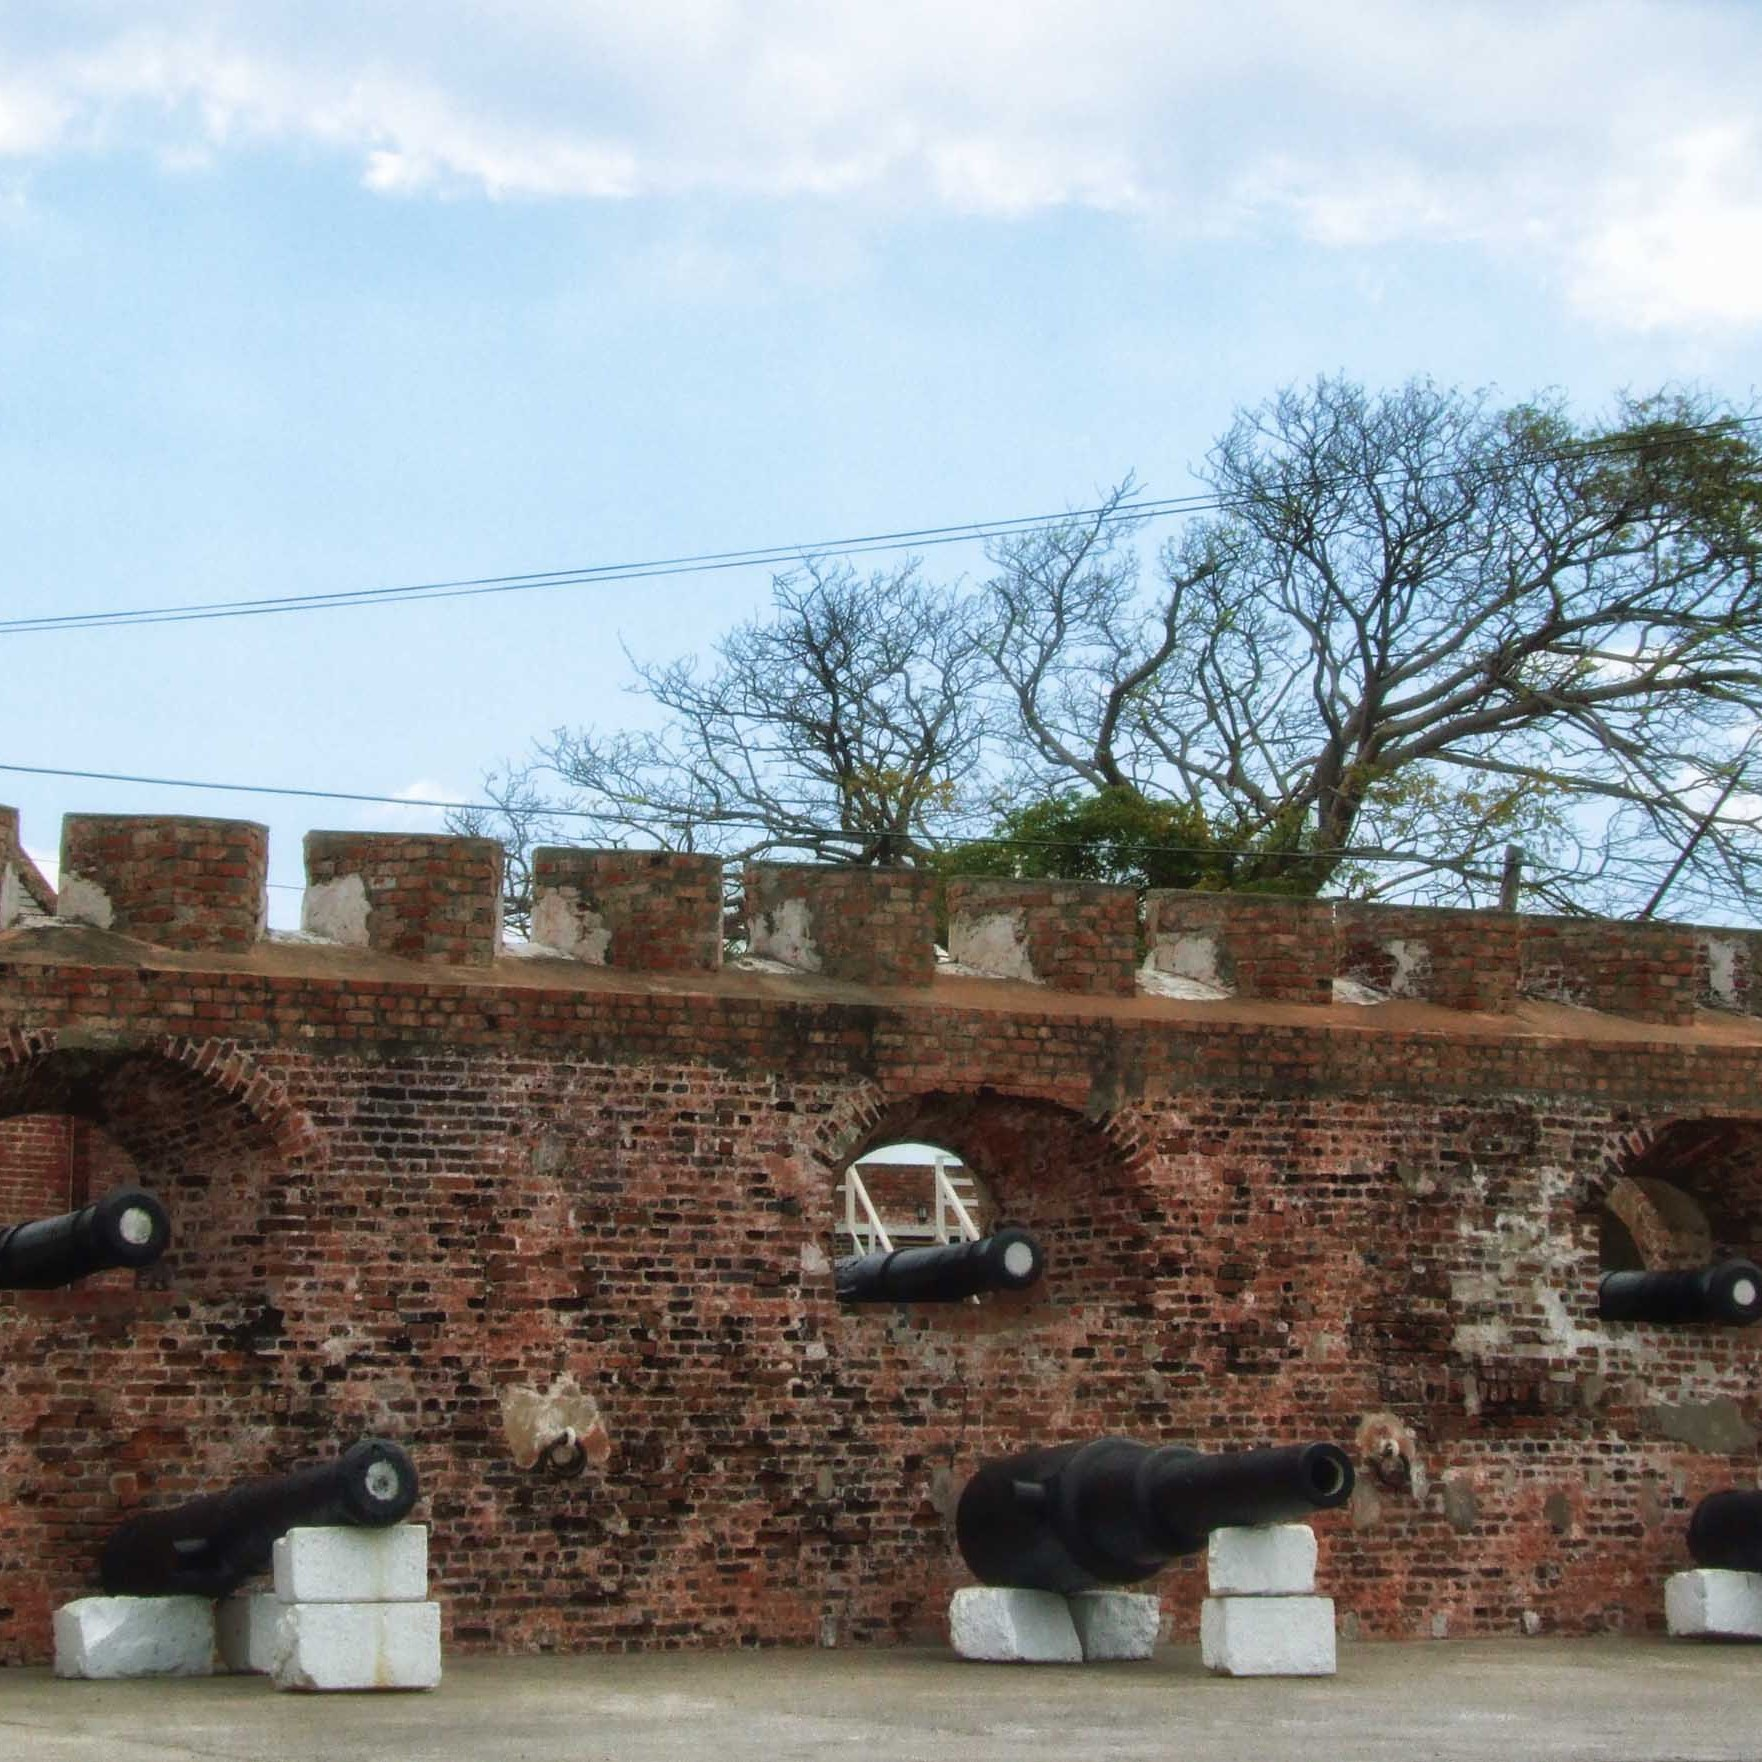 Brick battlements with cannons